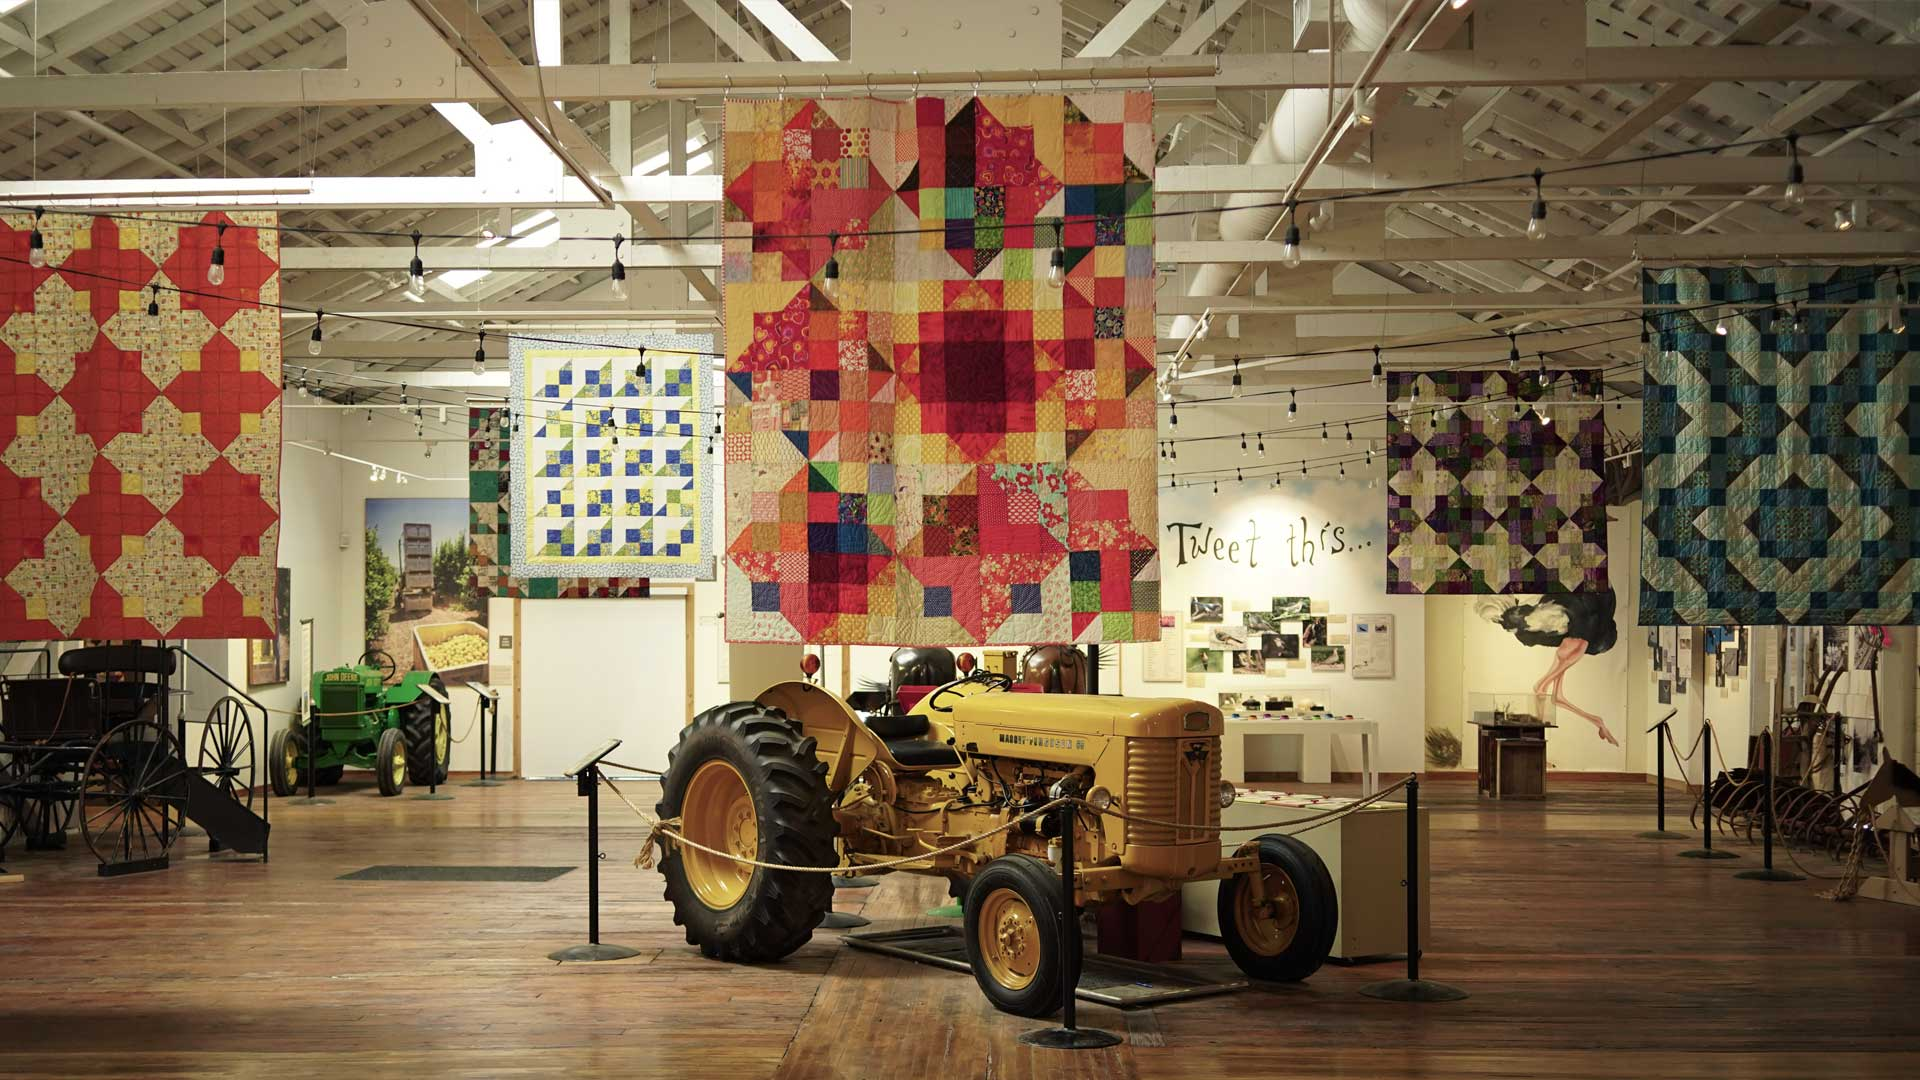 Exhibit Sneak Peek: Wrapped With Care at The Ag